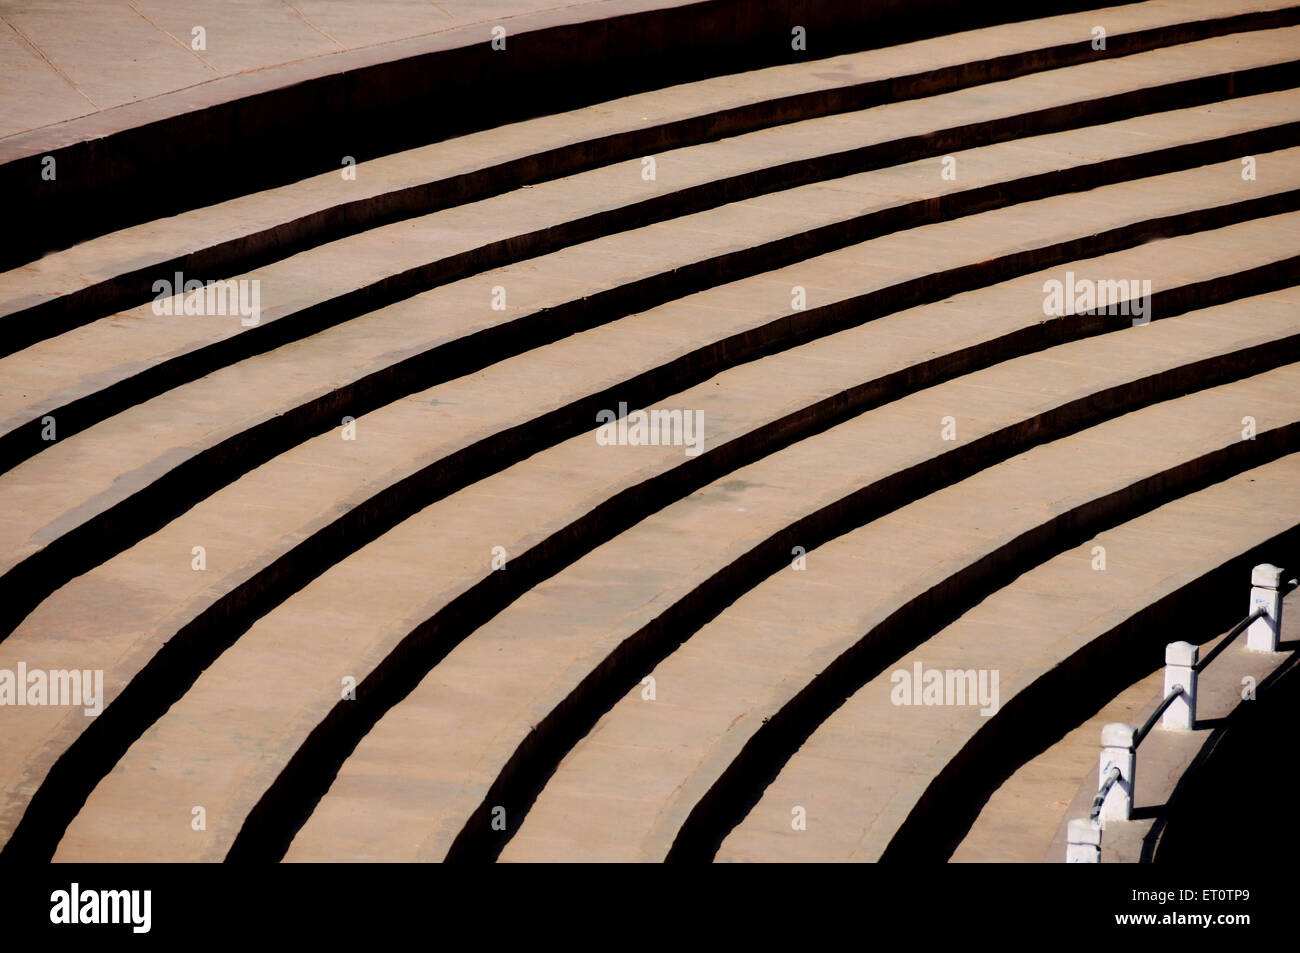 Sitting arrangement of a ground steps like shadow pattern ; India - Stock Image